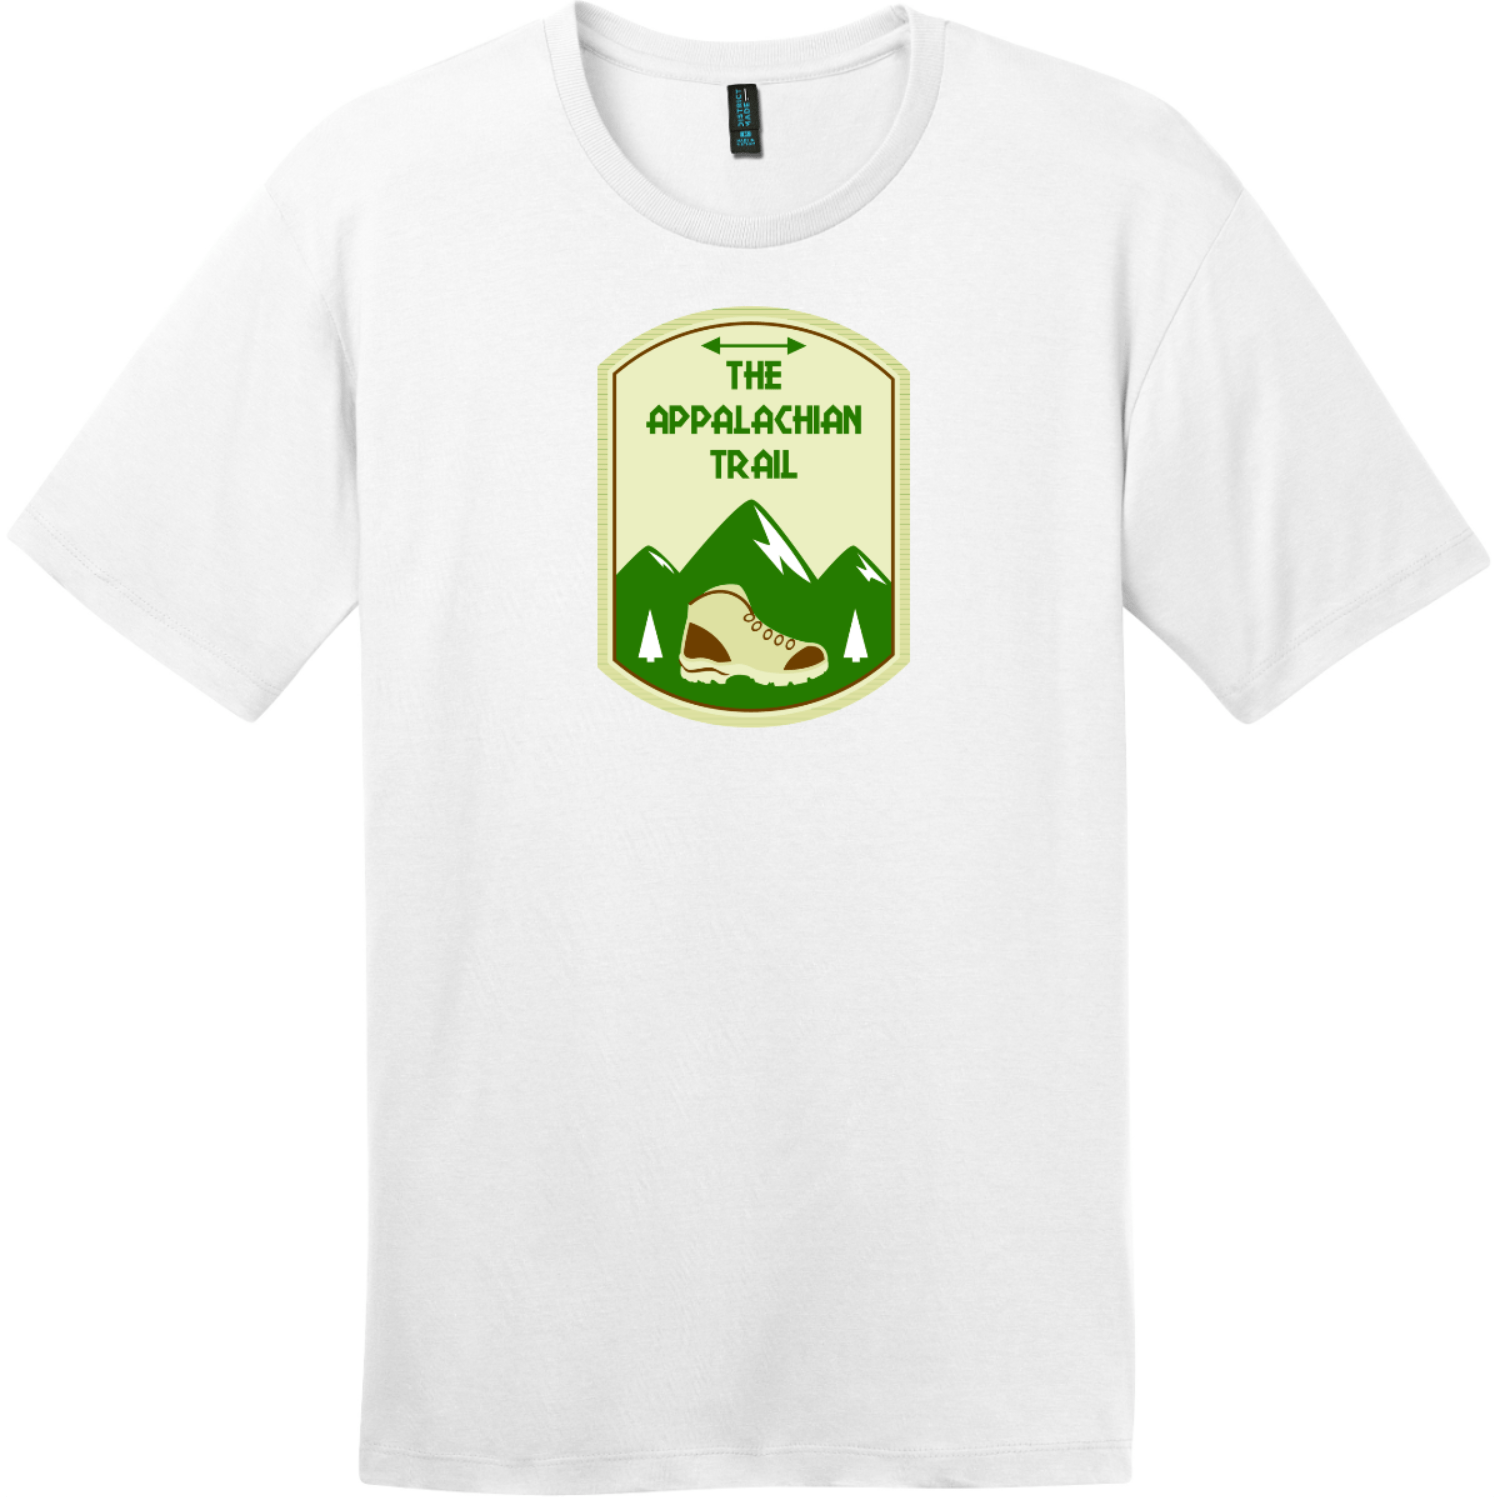 Appalachian Trail Mountain T-Shirt Bright White District Perfect Weight Tee DT104